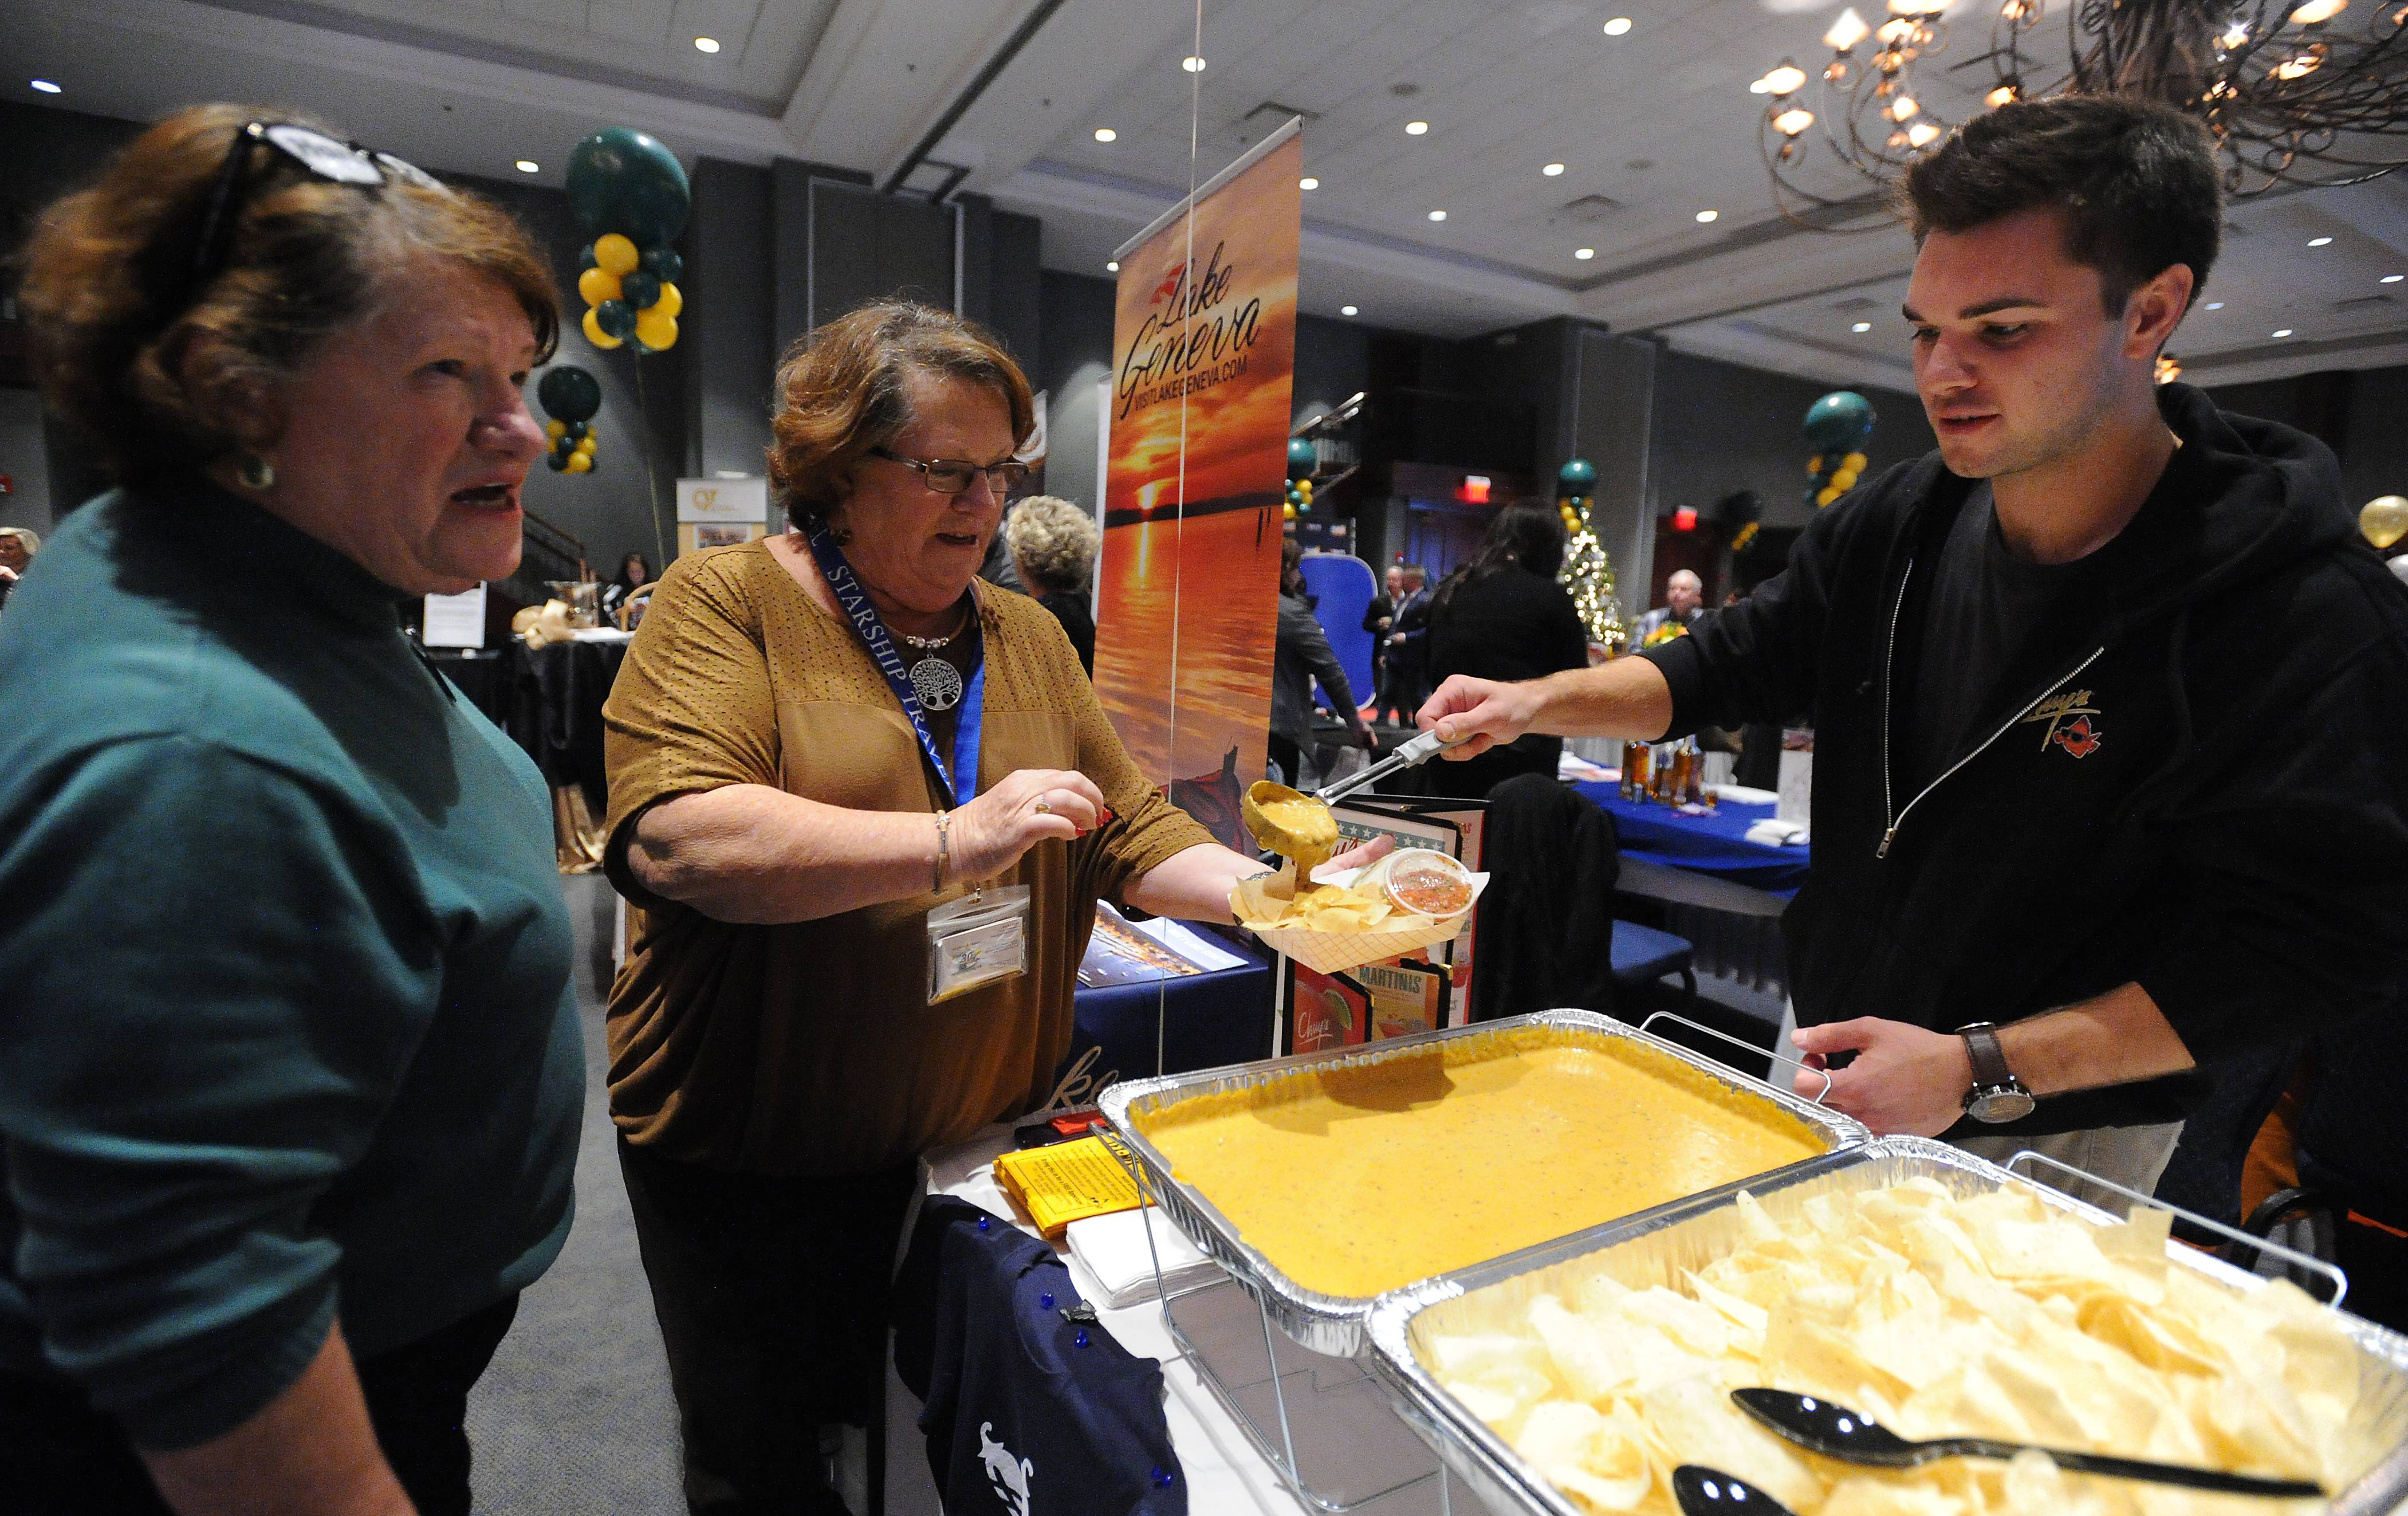 Mark Welsh/mwelsh@dailyherald.comLinda Schreiber (left) of Arlington Heights along with her sister Karen Kass samples food from the new Schaumburg restaurant Chuys's by Anthony Klebba at the Daily Herald Business Ledger Hospitality Expo Northwest in Hoffman Estates on Thursday.